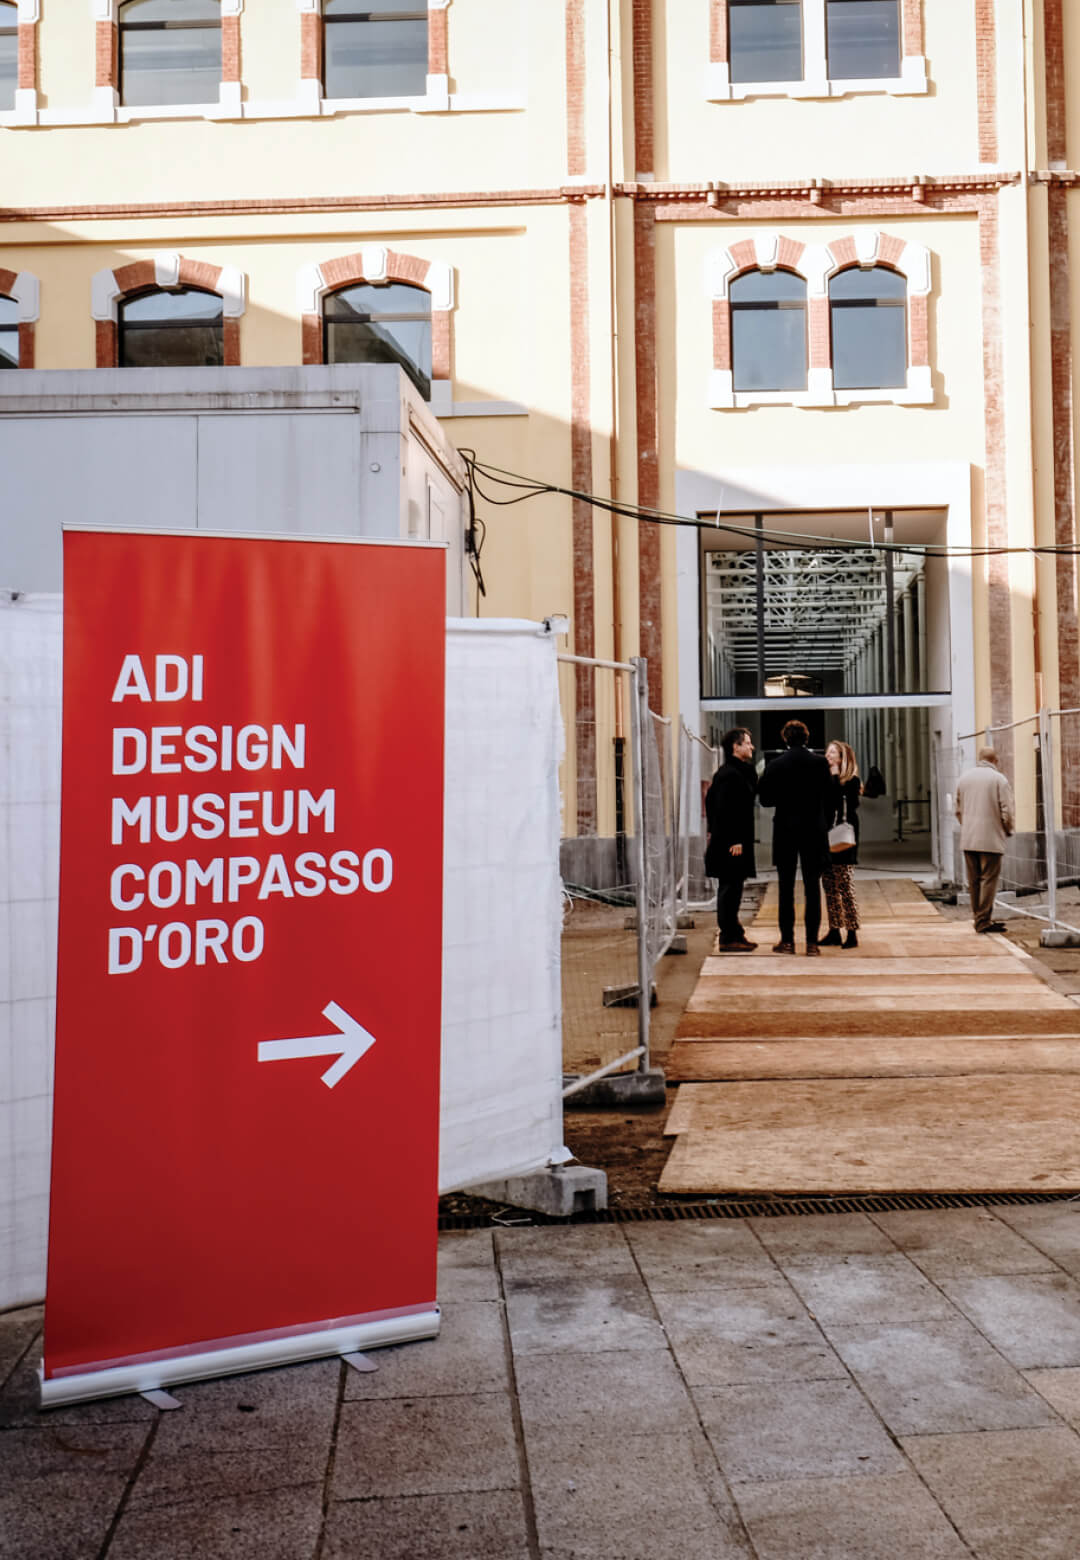 The recently opened new ADI Design Museum in Milan will showcase the historic collection of the Compasso d'Oro | ADI Museum Compasso d'Oro | STIRworld